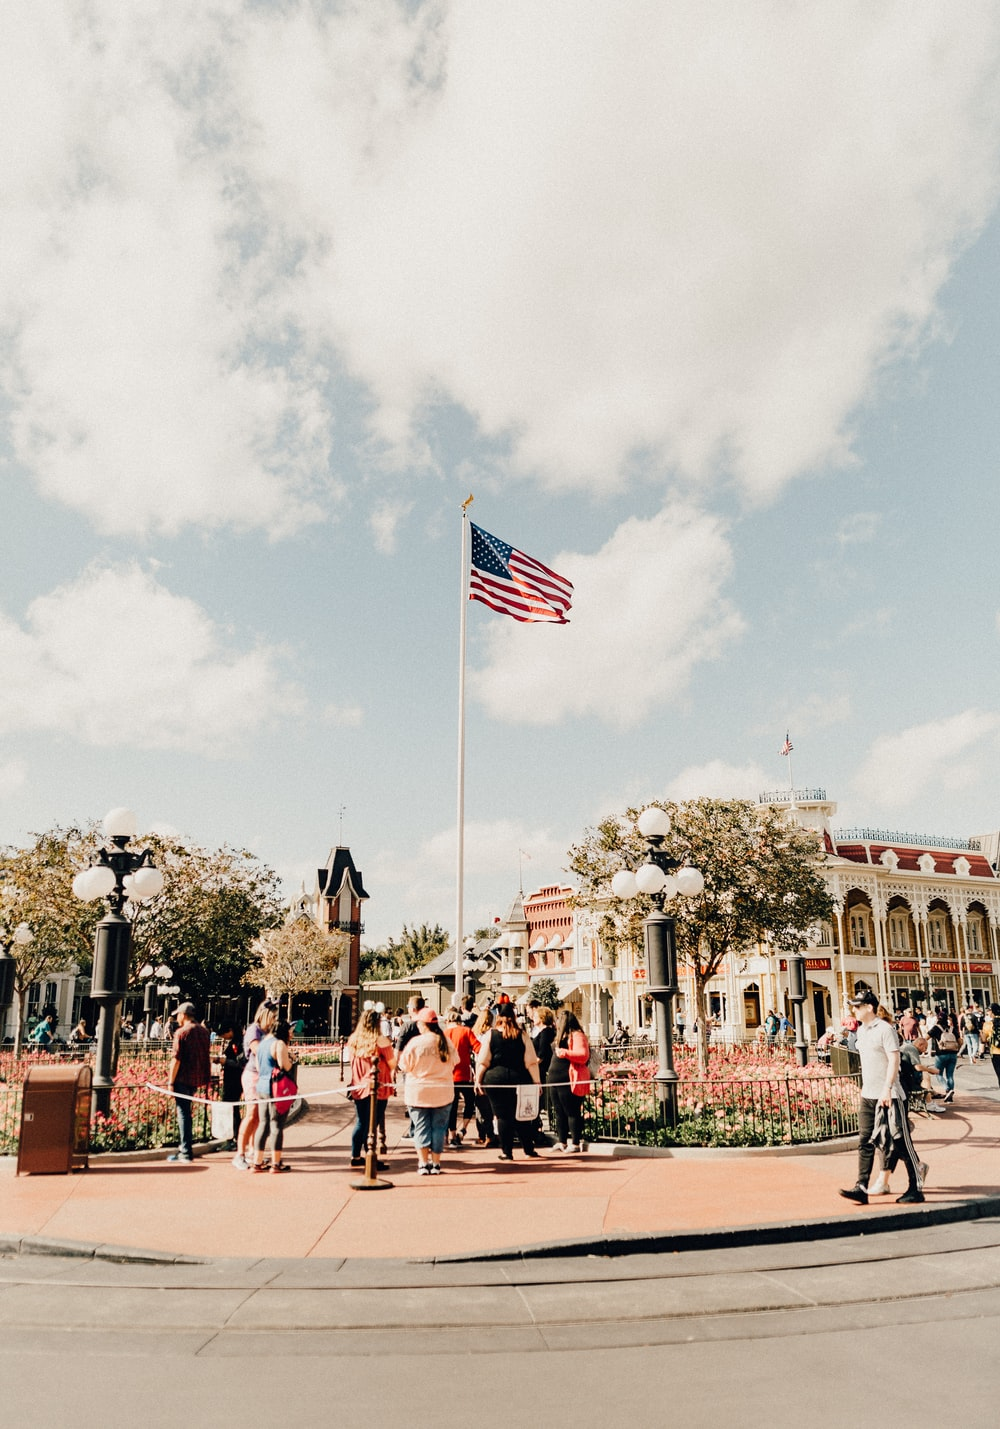 people standing and woman walking and standing by pole with USA flag